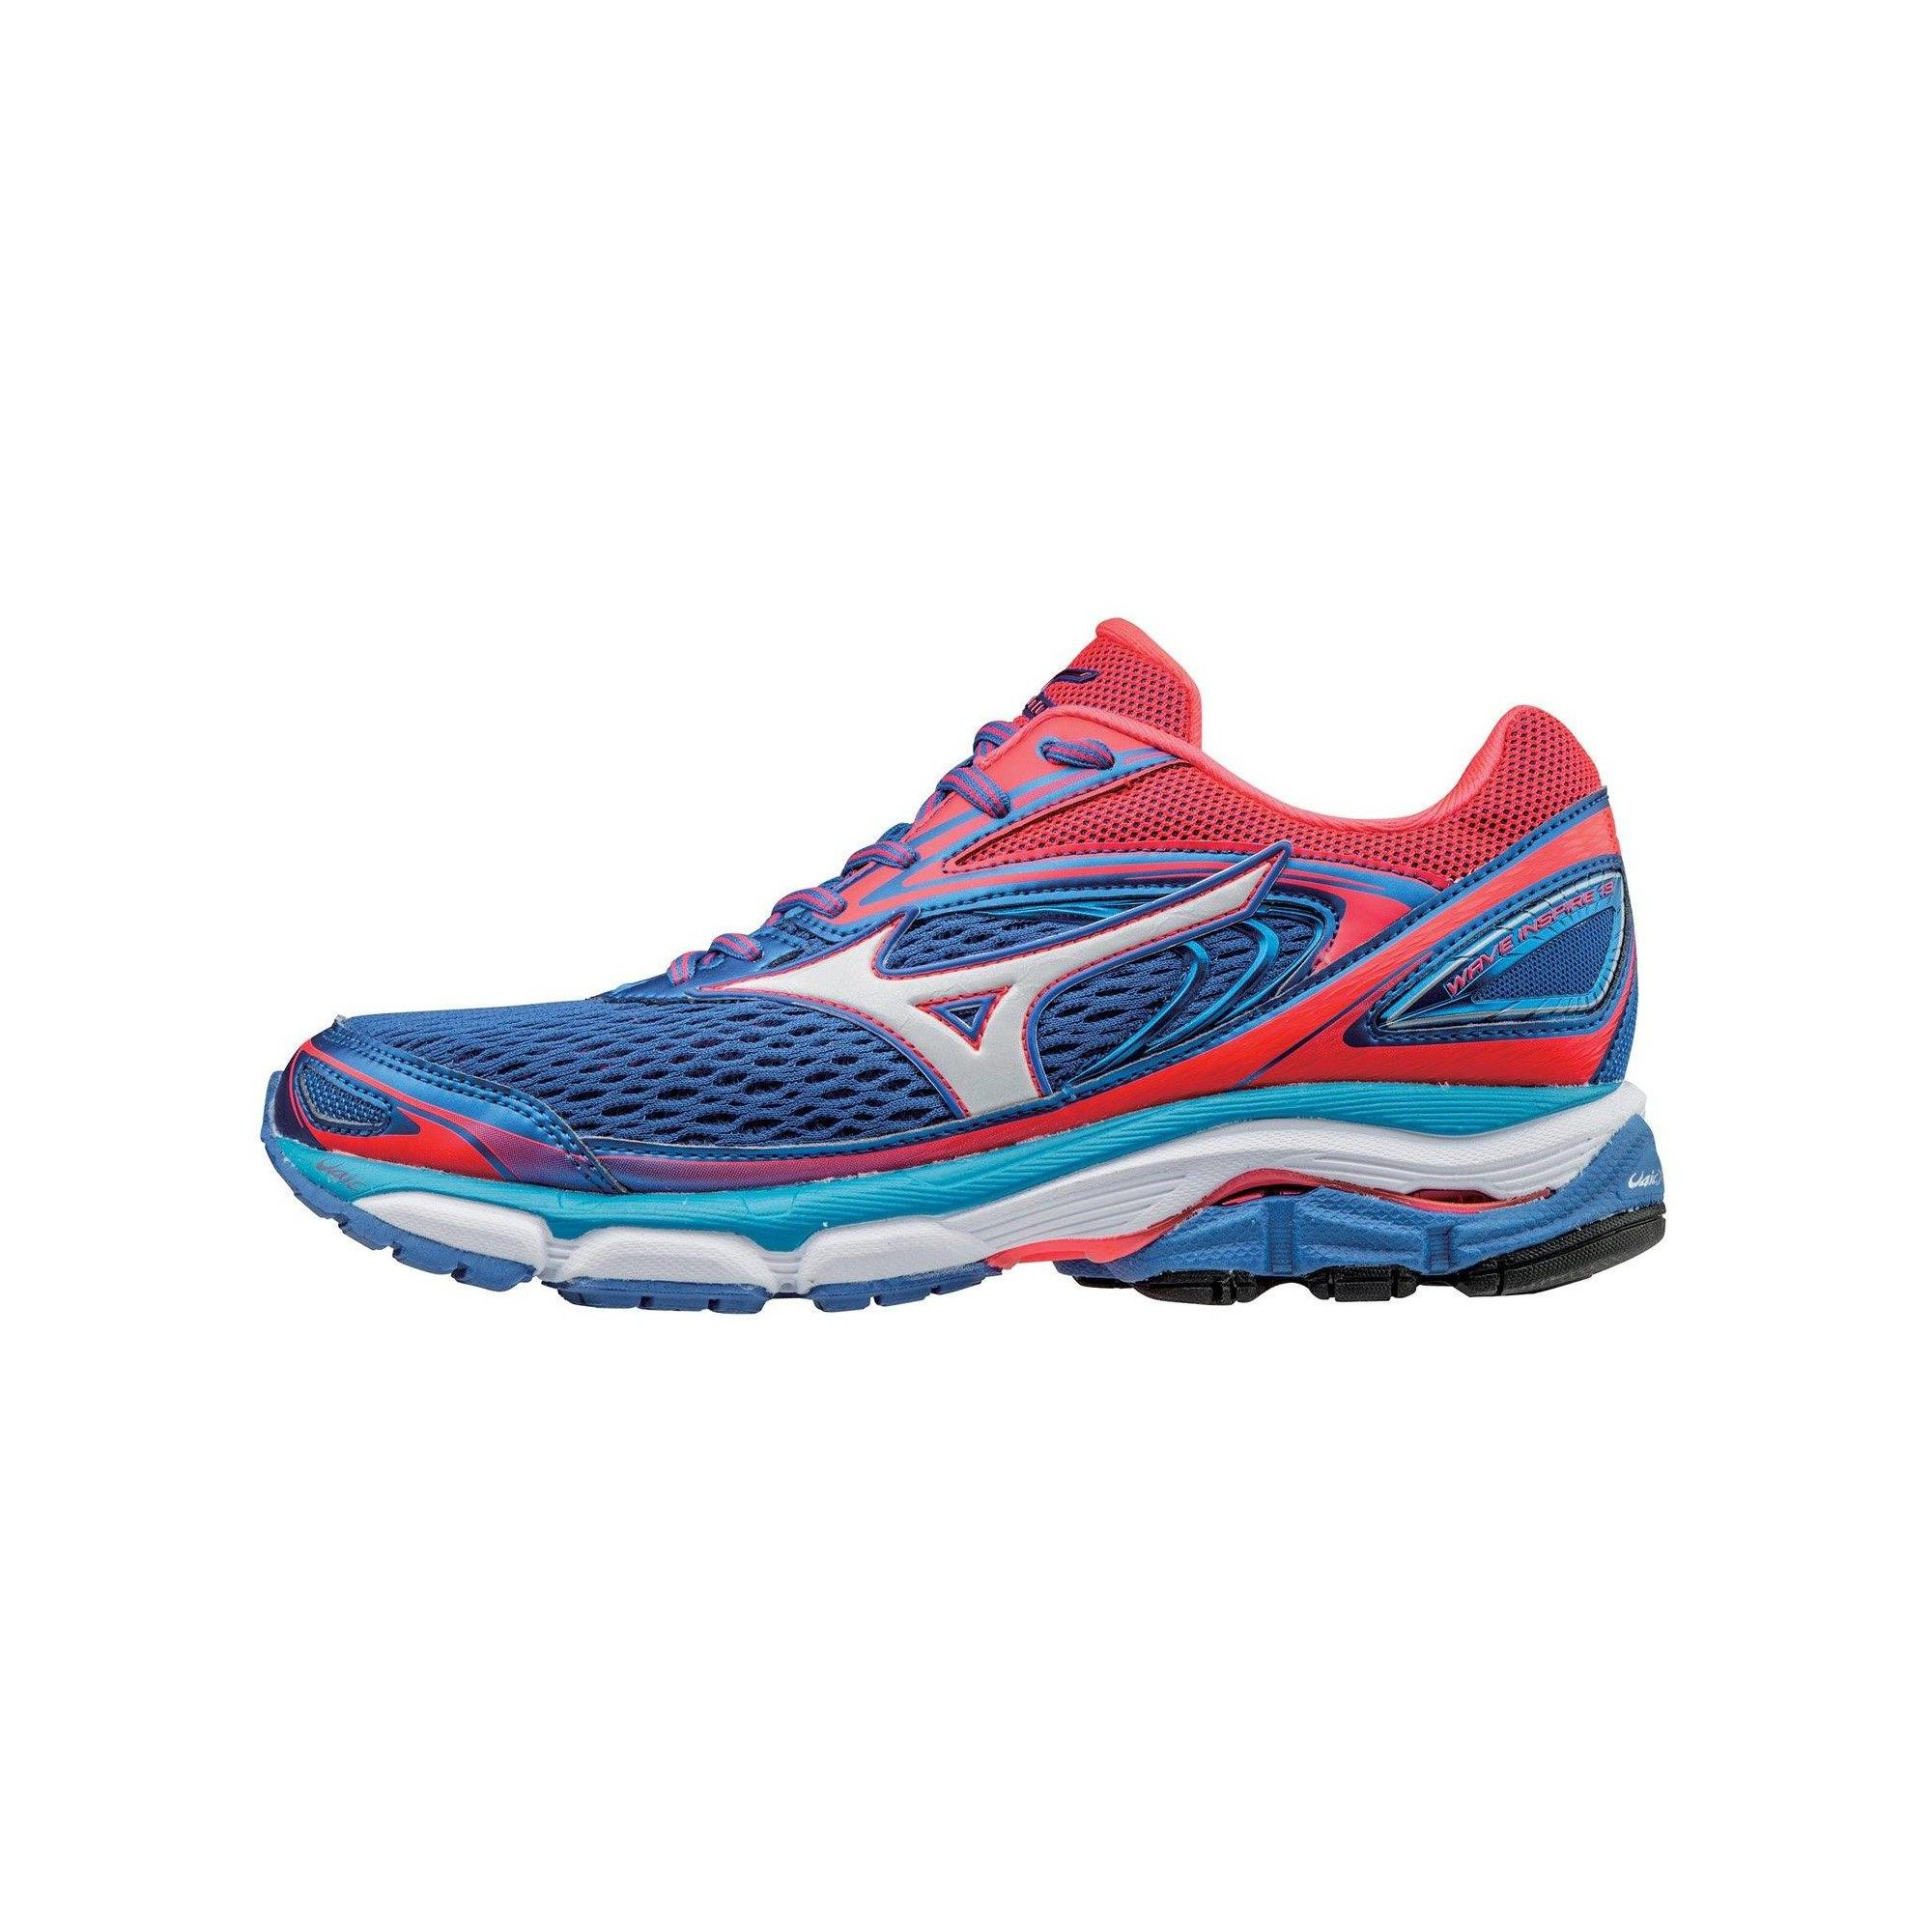 Mizuno Women's Wave Inspire 13 Running Shoe Womens Size 7.5